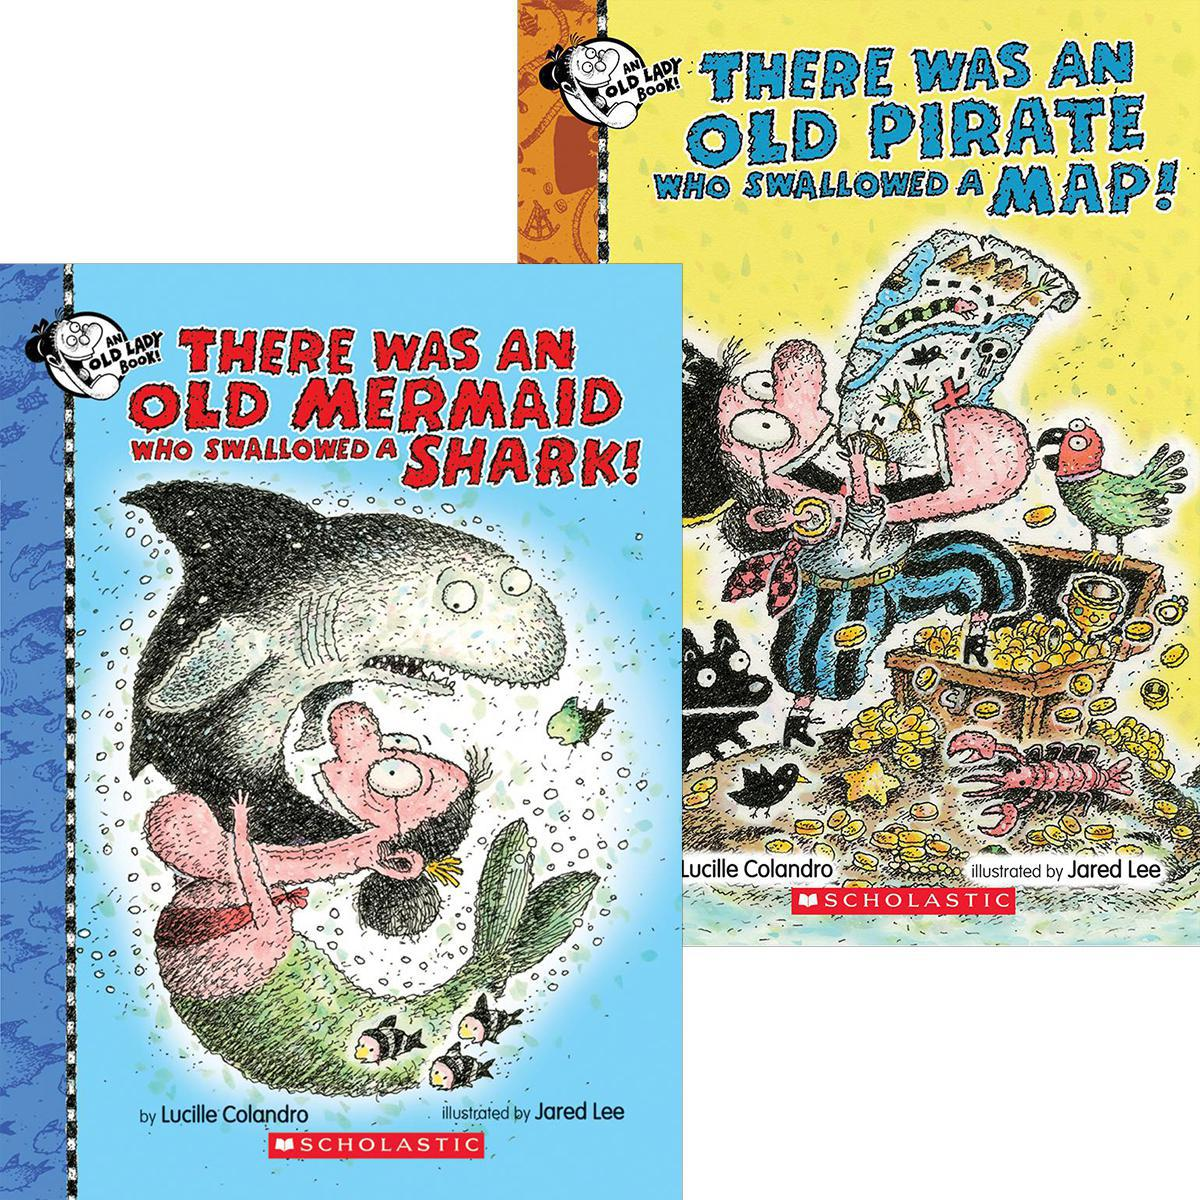 There Was an Old Mermaid and Pirate Pack